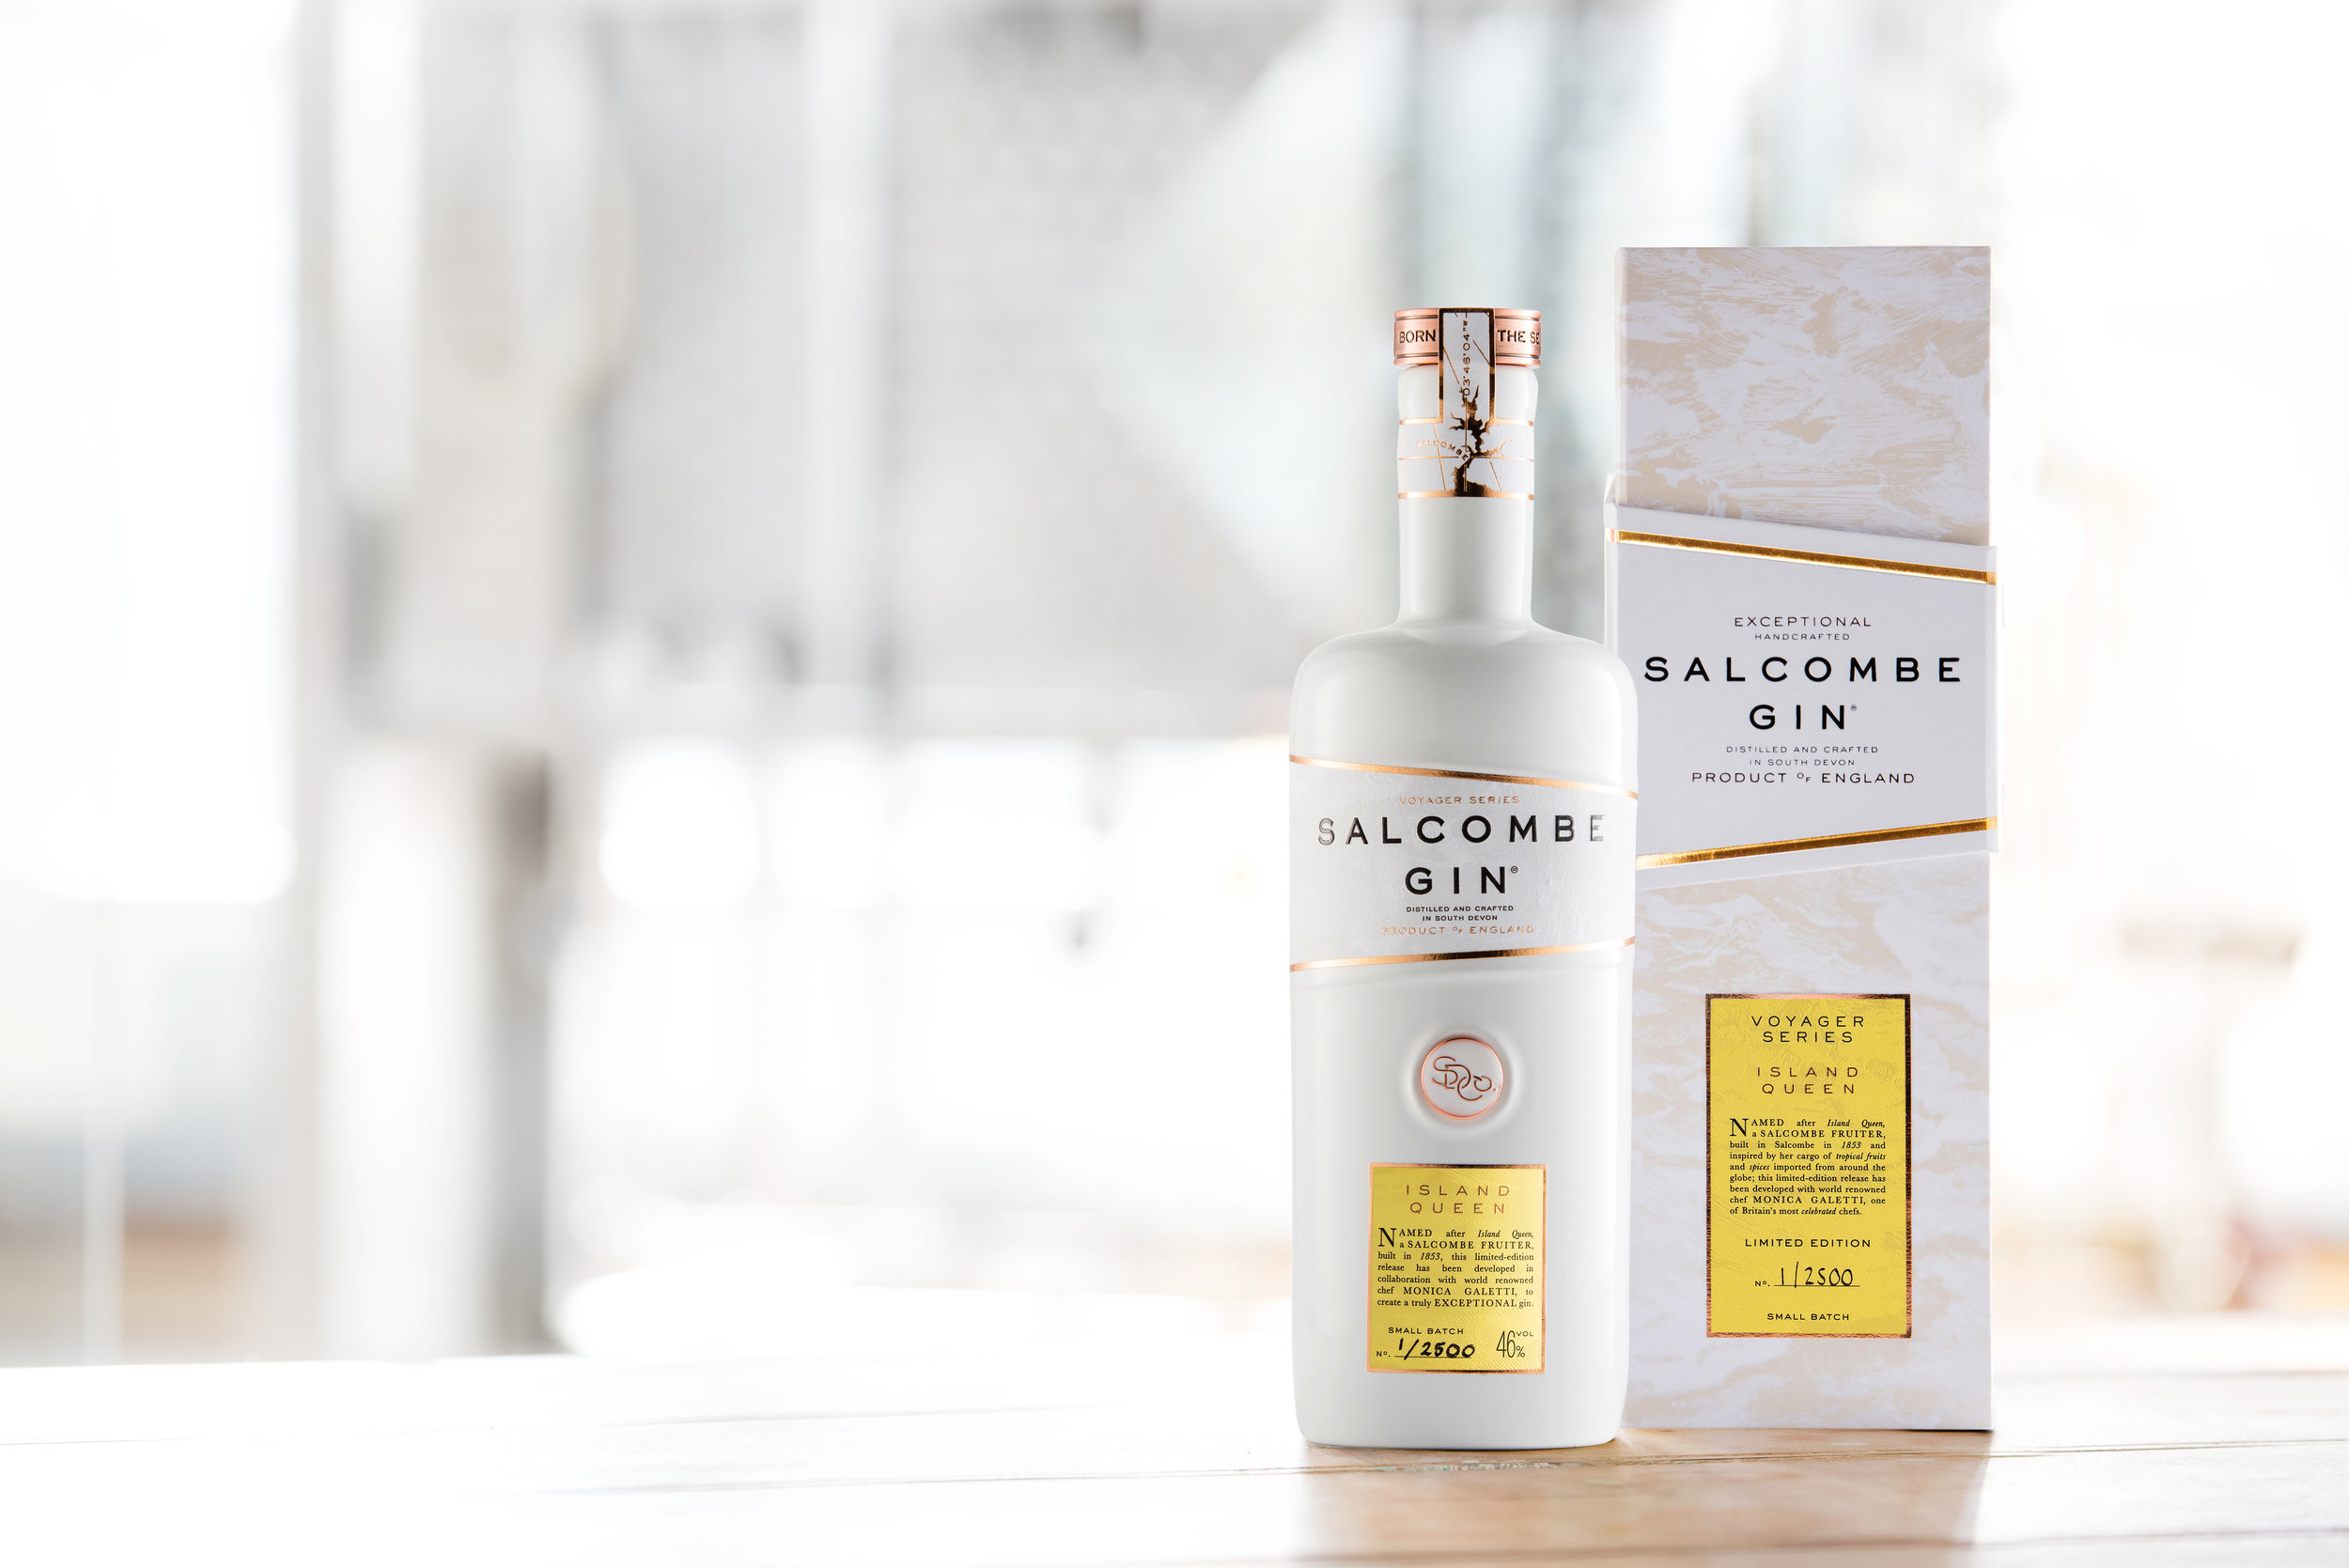 SALCOMBE_GIN_ISLAND_QUEEN_DISTILLERY_01.jpg